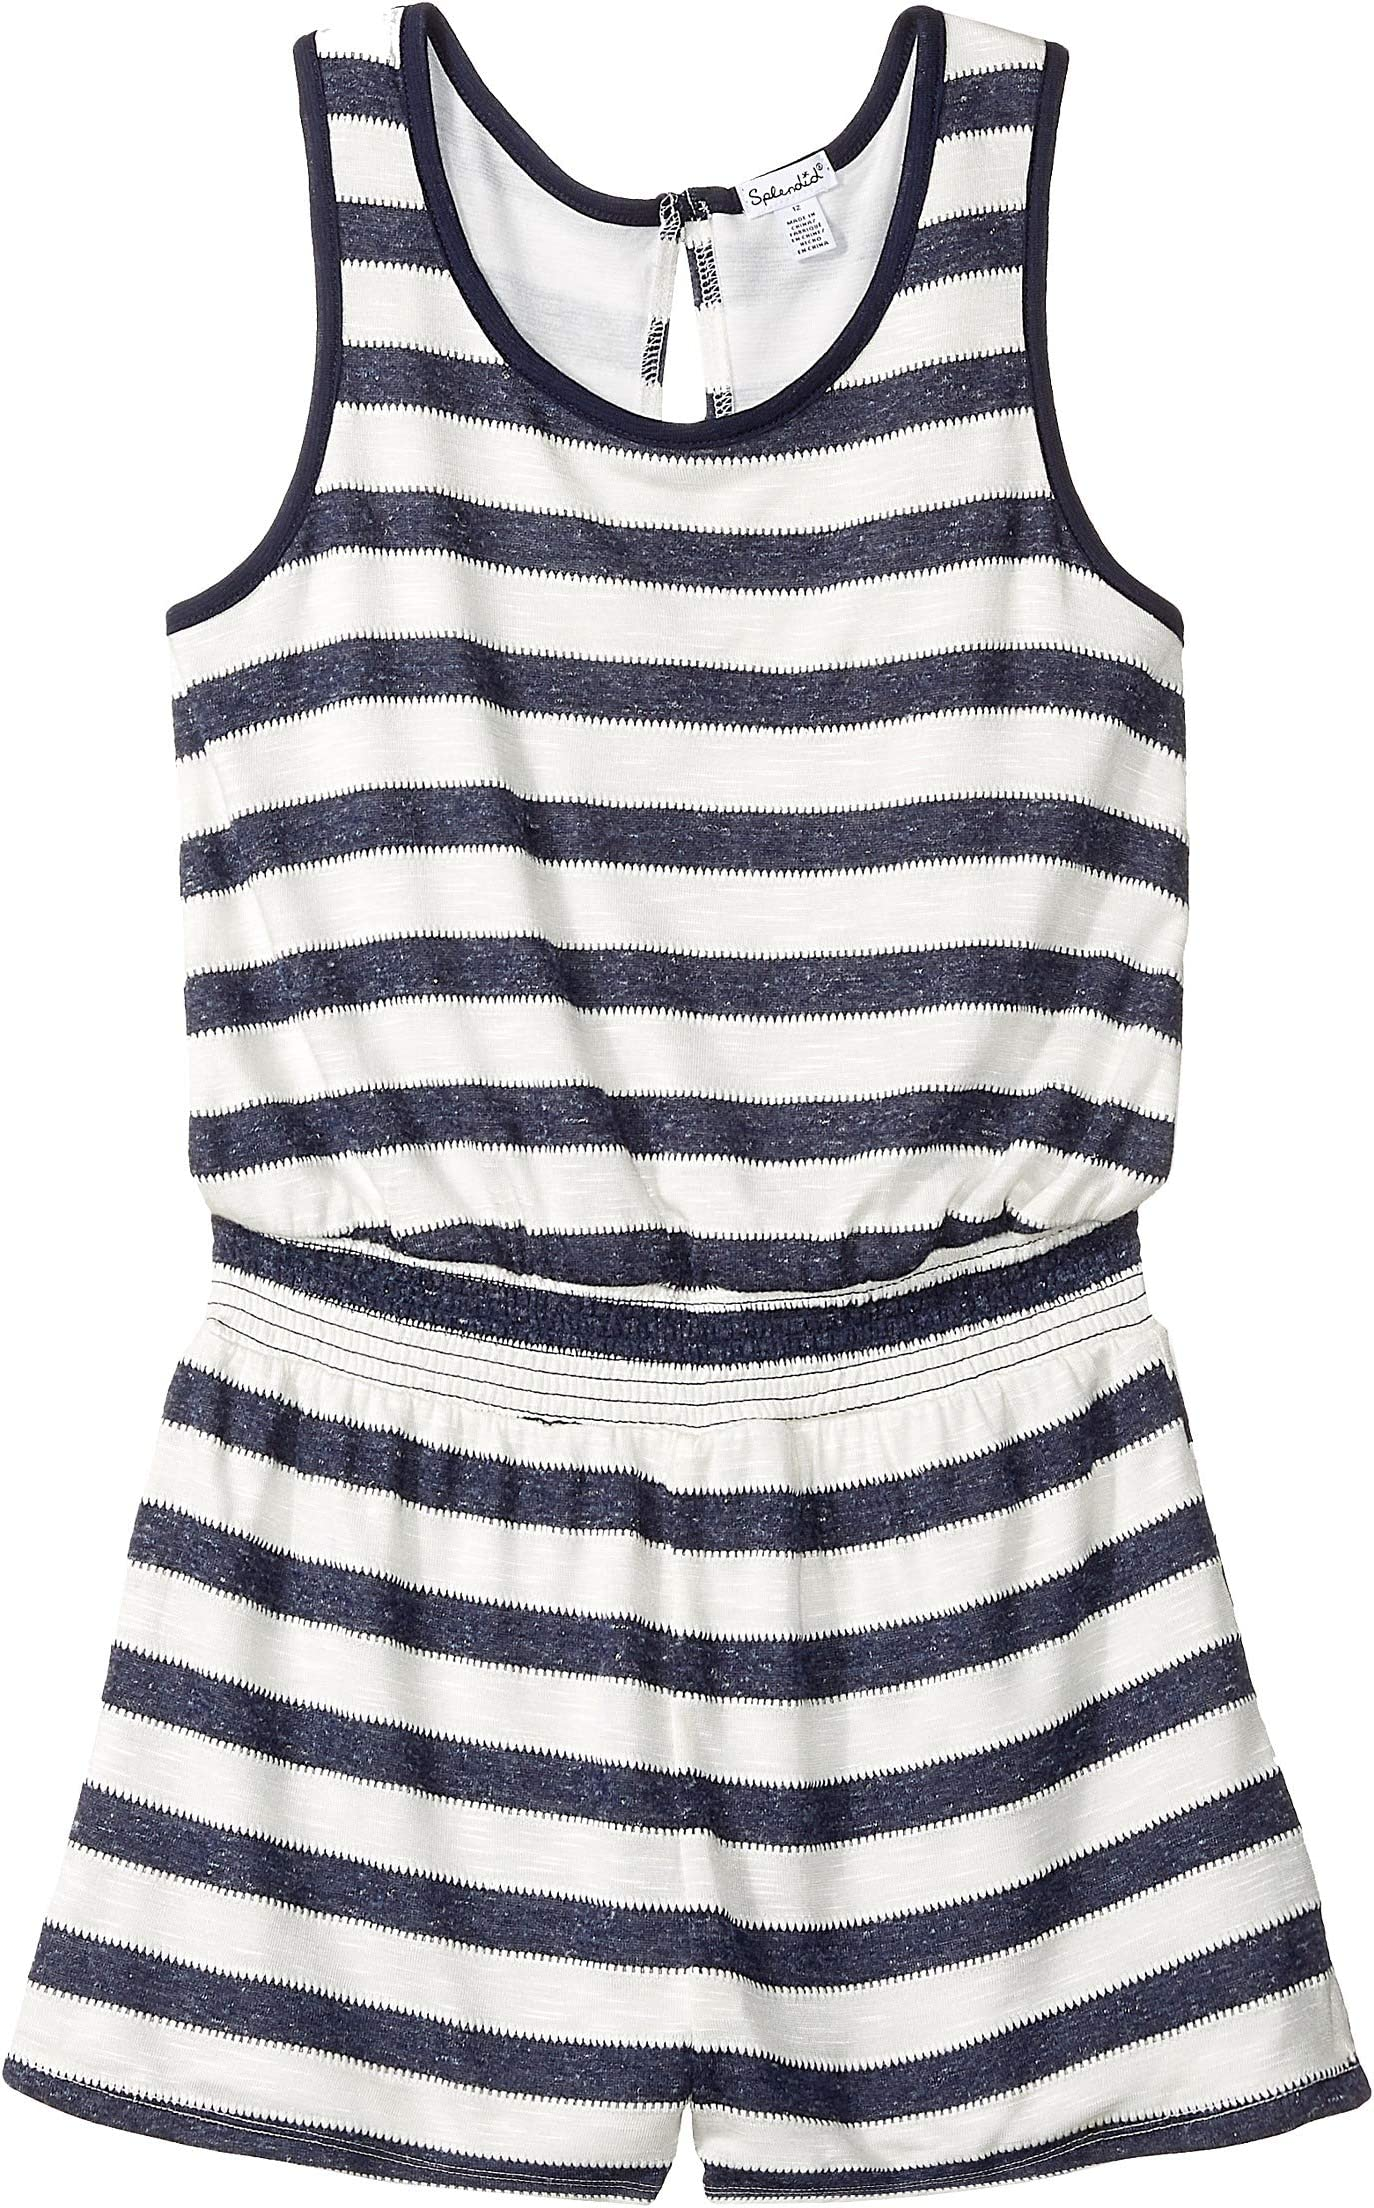 0aa986fef061 Kids': Free shipping on clothing, shoes, and more! | Zappos.com